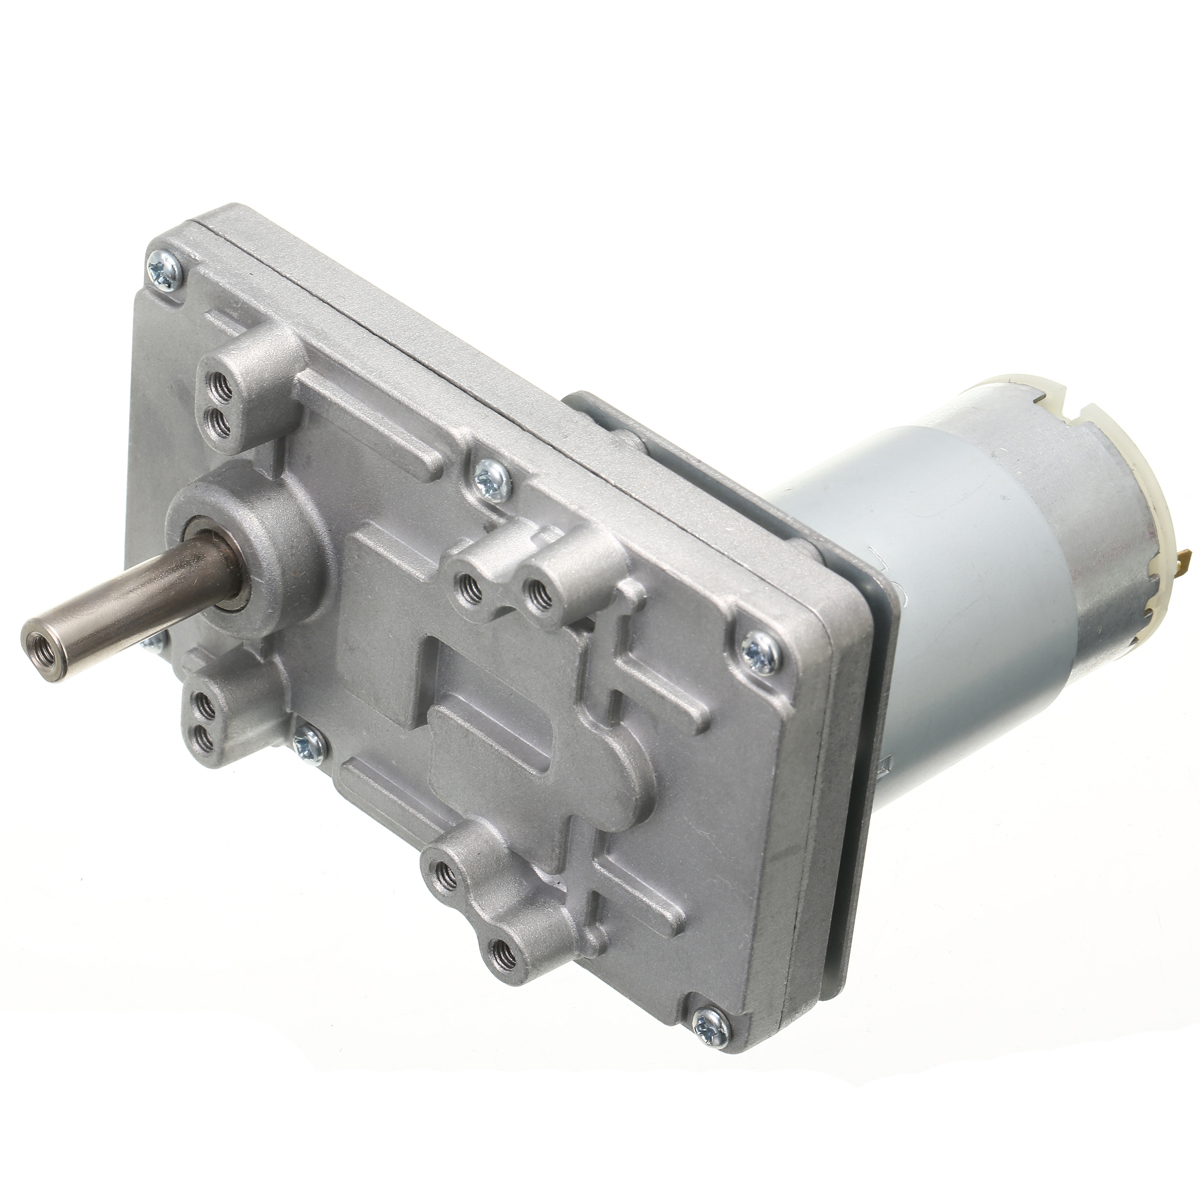 Durable DC12V-24V Takanawa 555 Gear Motor Metal High Torque Low Noise 555 Gear Motor for Electric-drive Curtain Oven